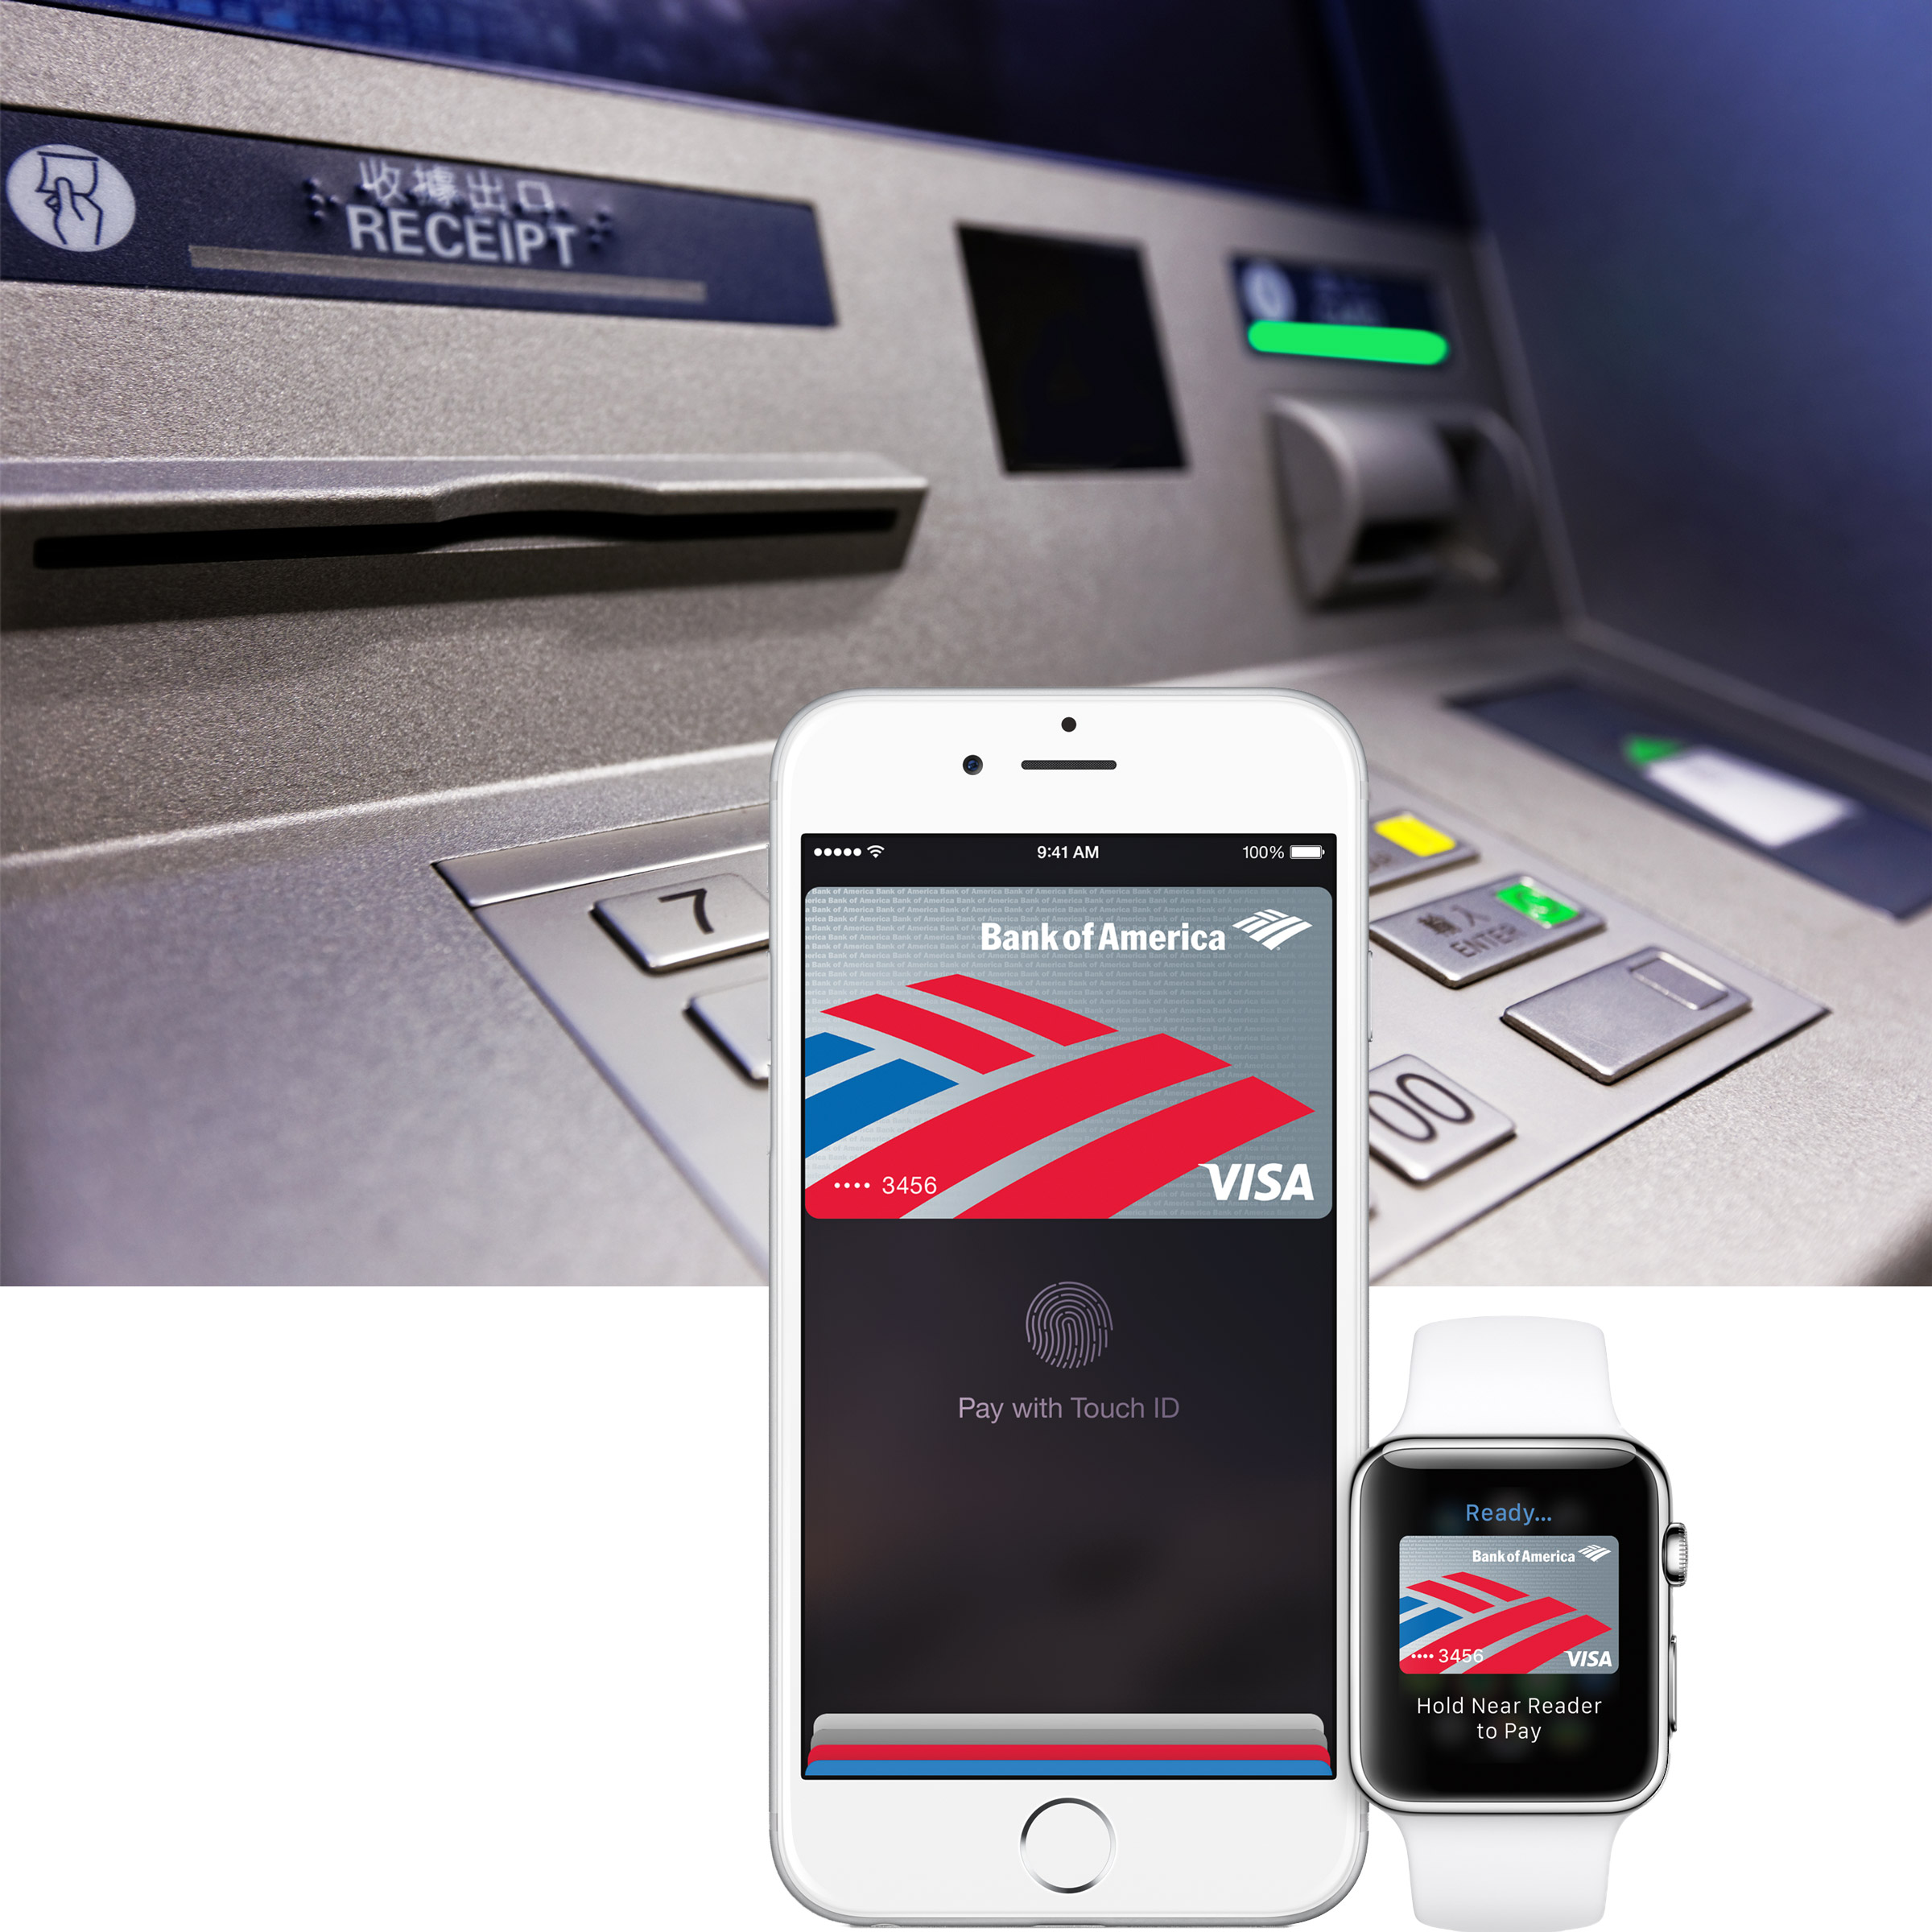 Apple Pay ATMs Reportedly Coming to Chase, Wells Fargo, Bank of America